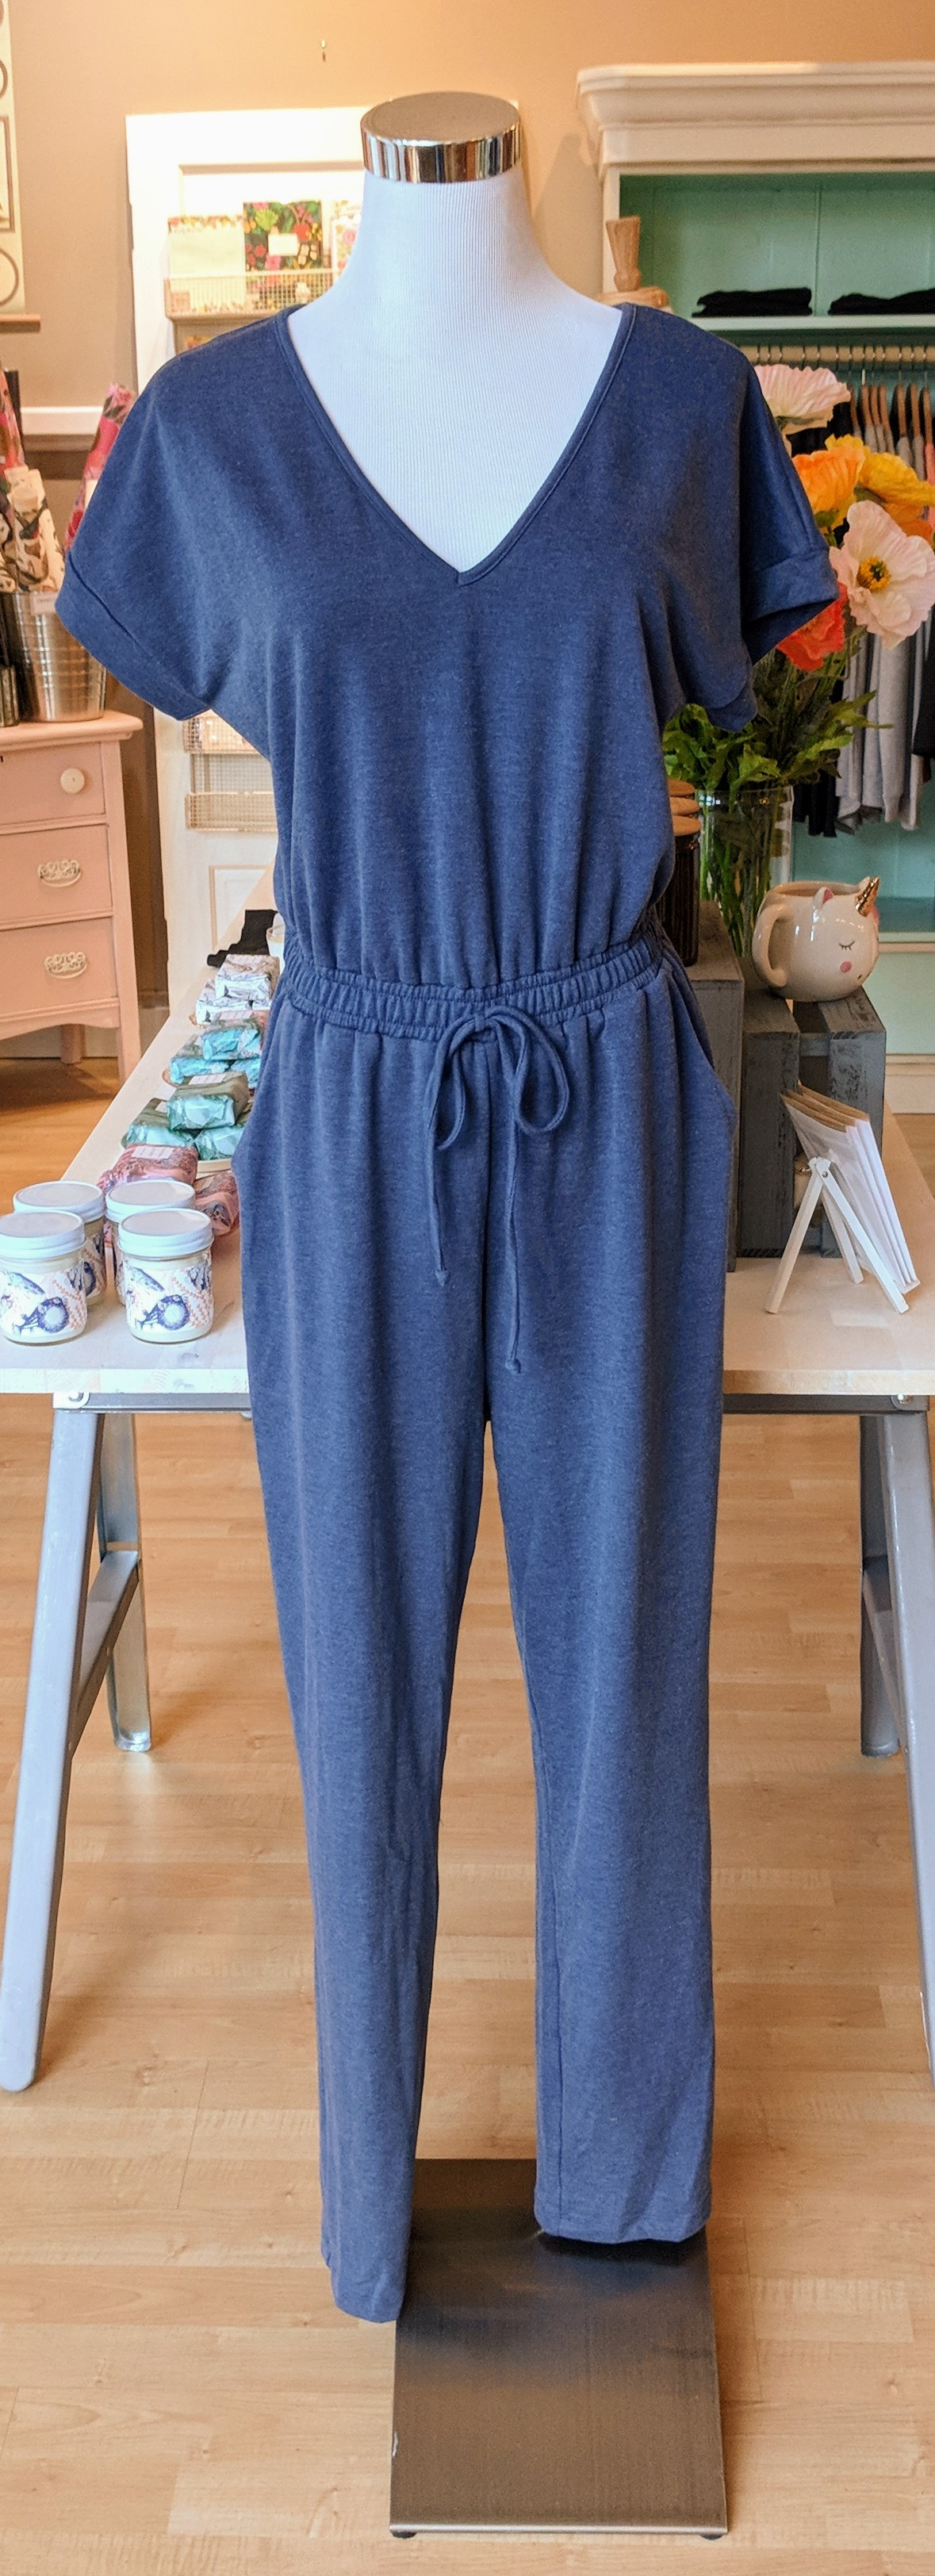 Denim blue jumpsuit with tie waistband